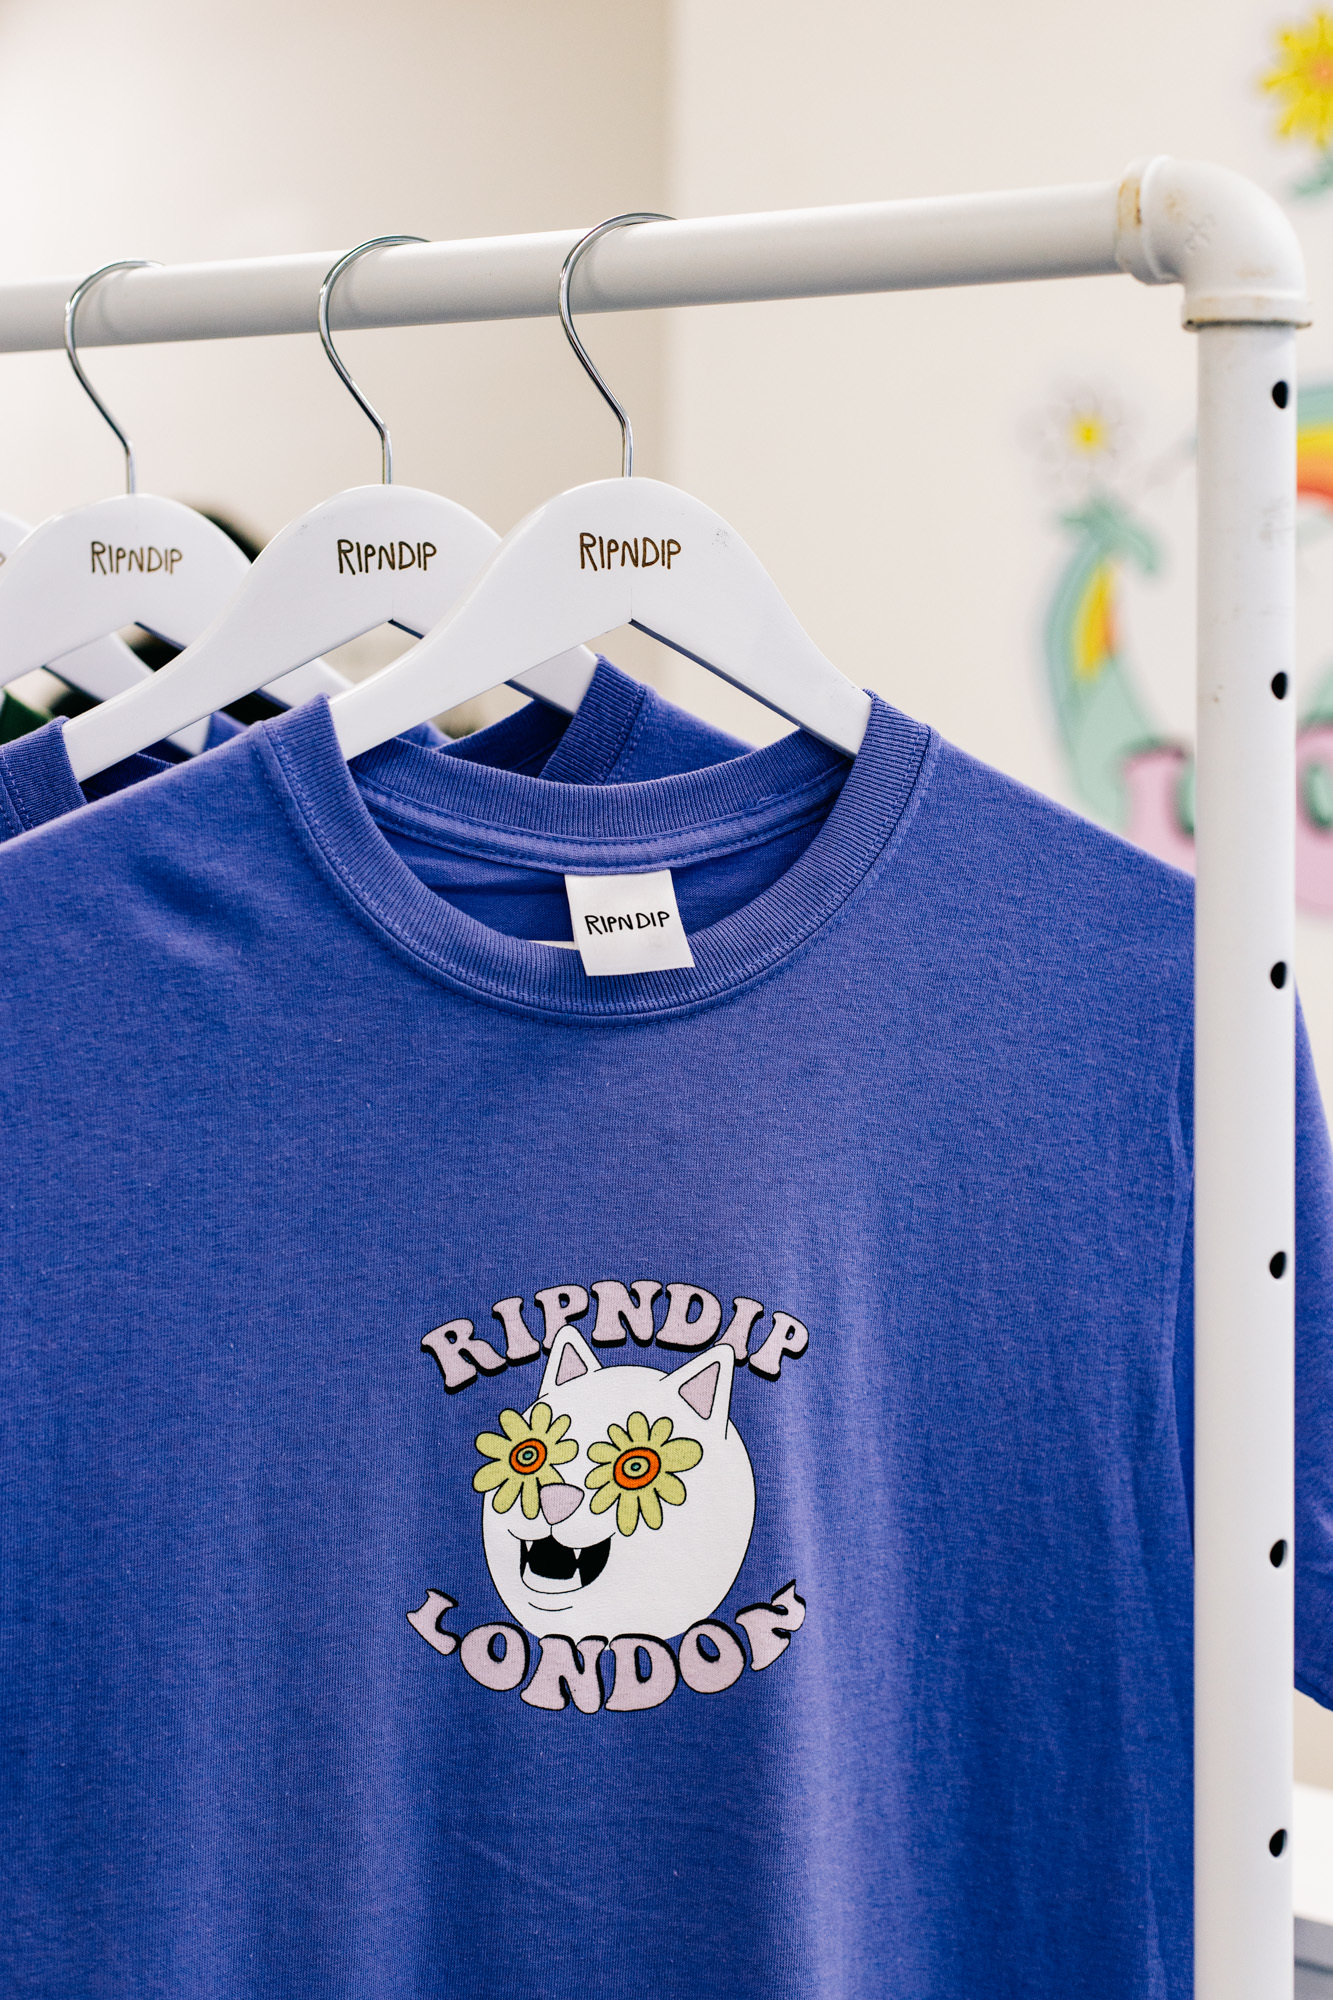 Ripndip, pop up, how to build a pop up, London pop up, things to see in London, short-term retail,